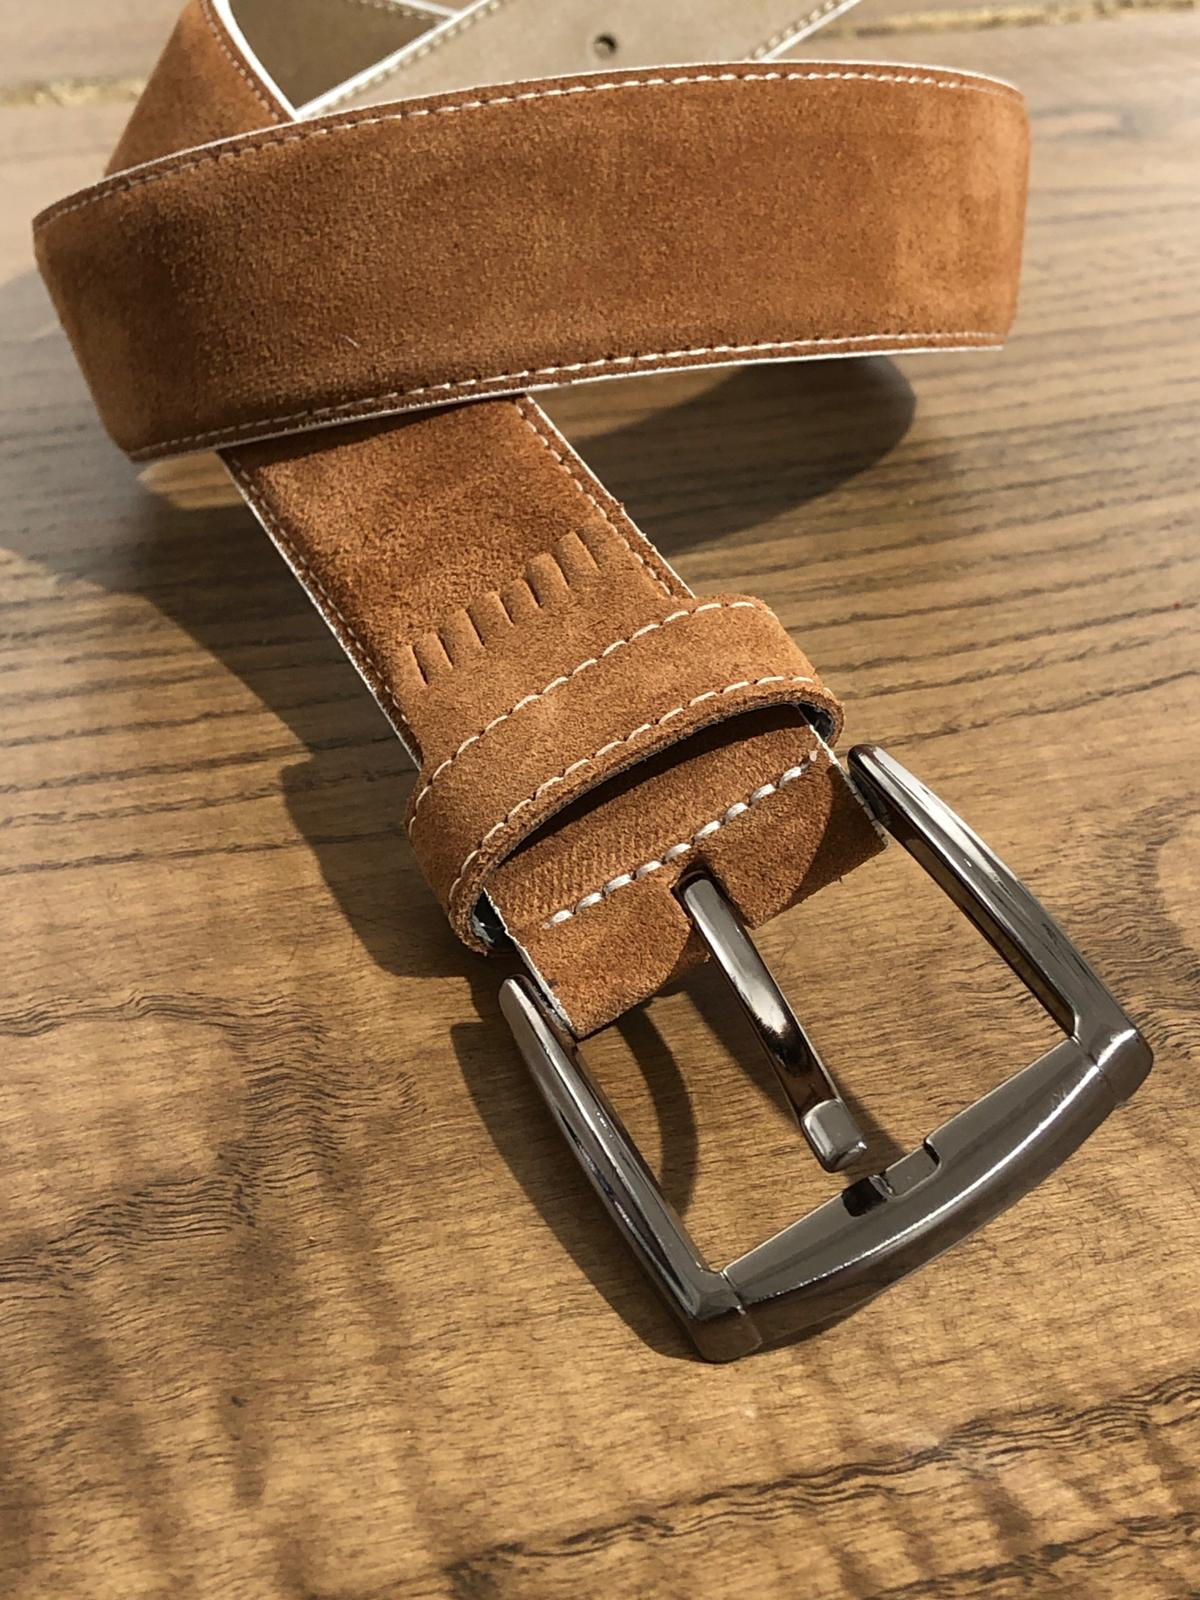 Suede Tasseled Detailed Leather Belts in 5 Colors